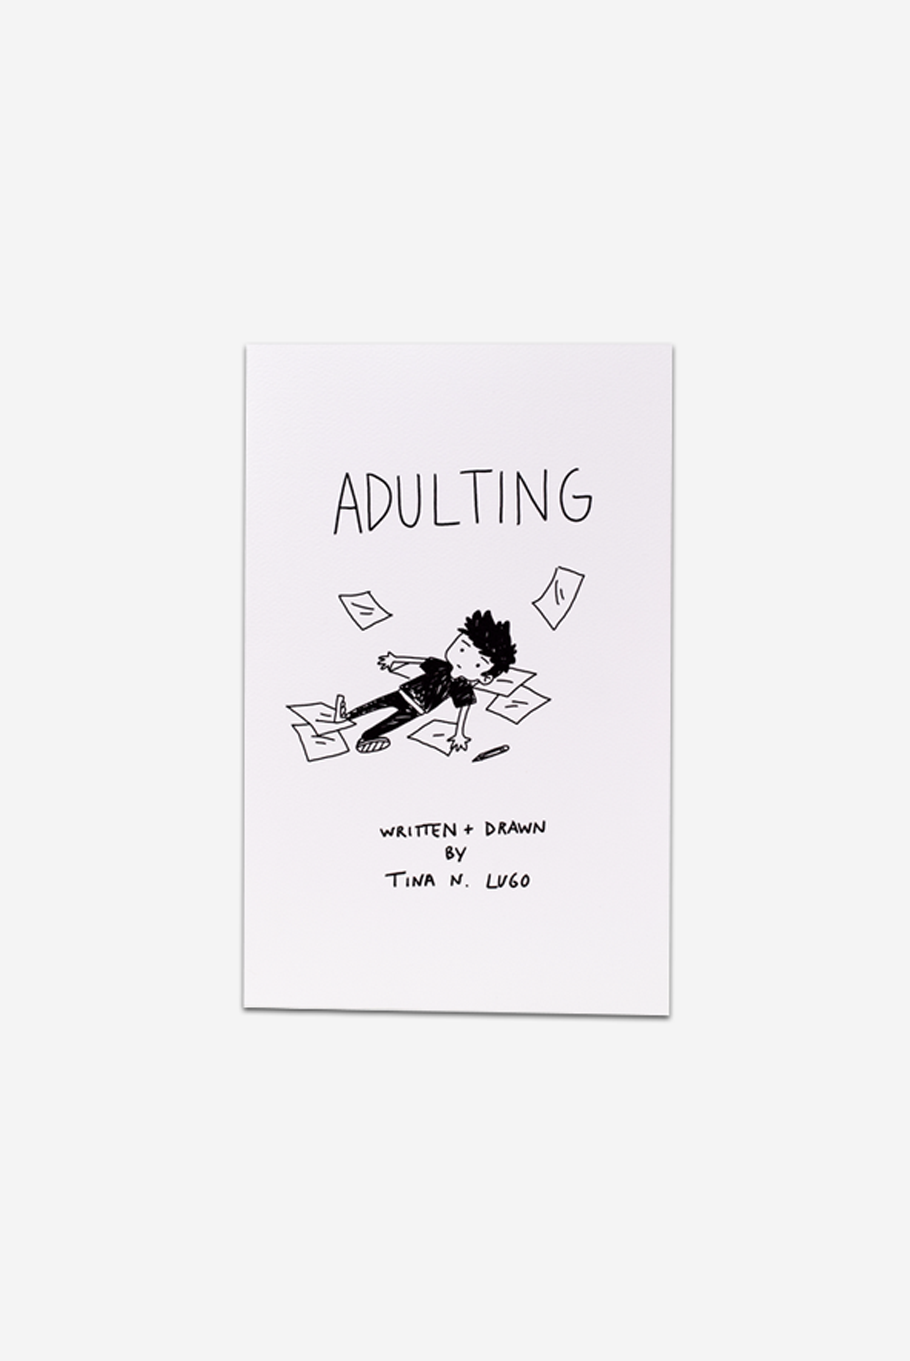 Adulting by Tina Lugo